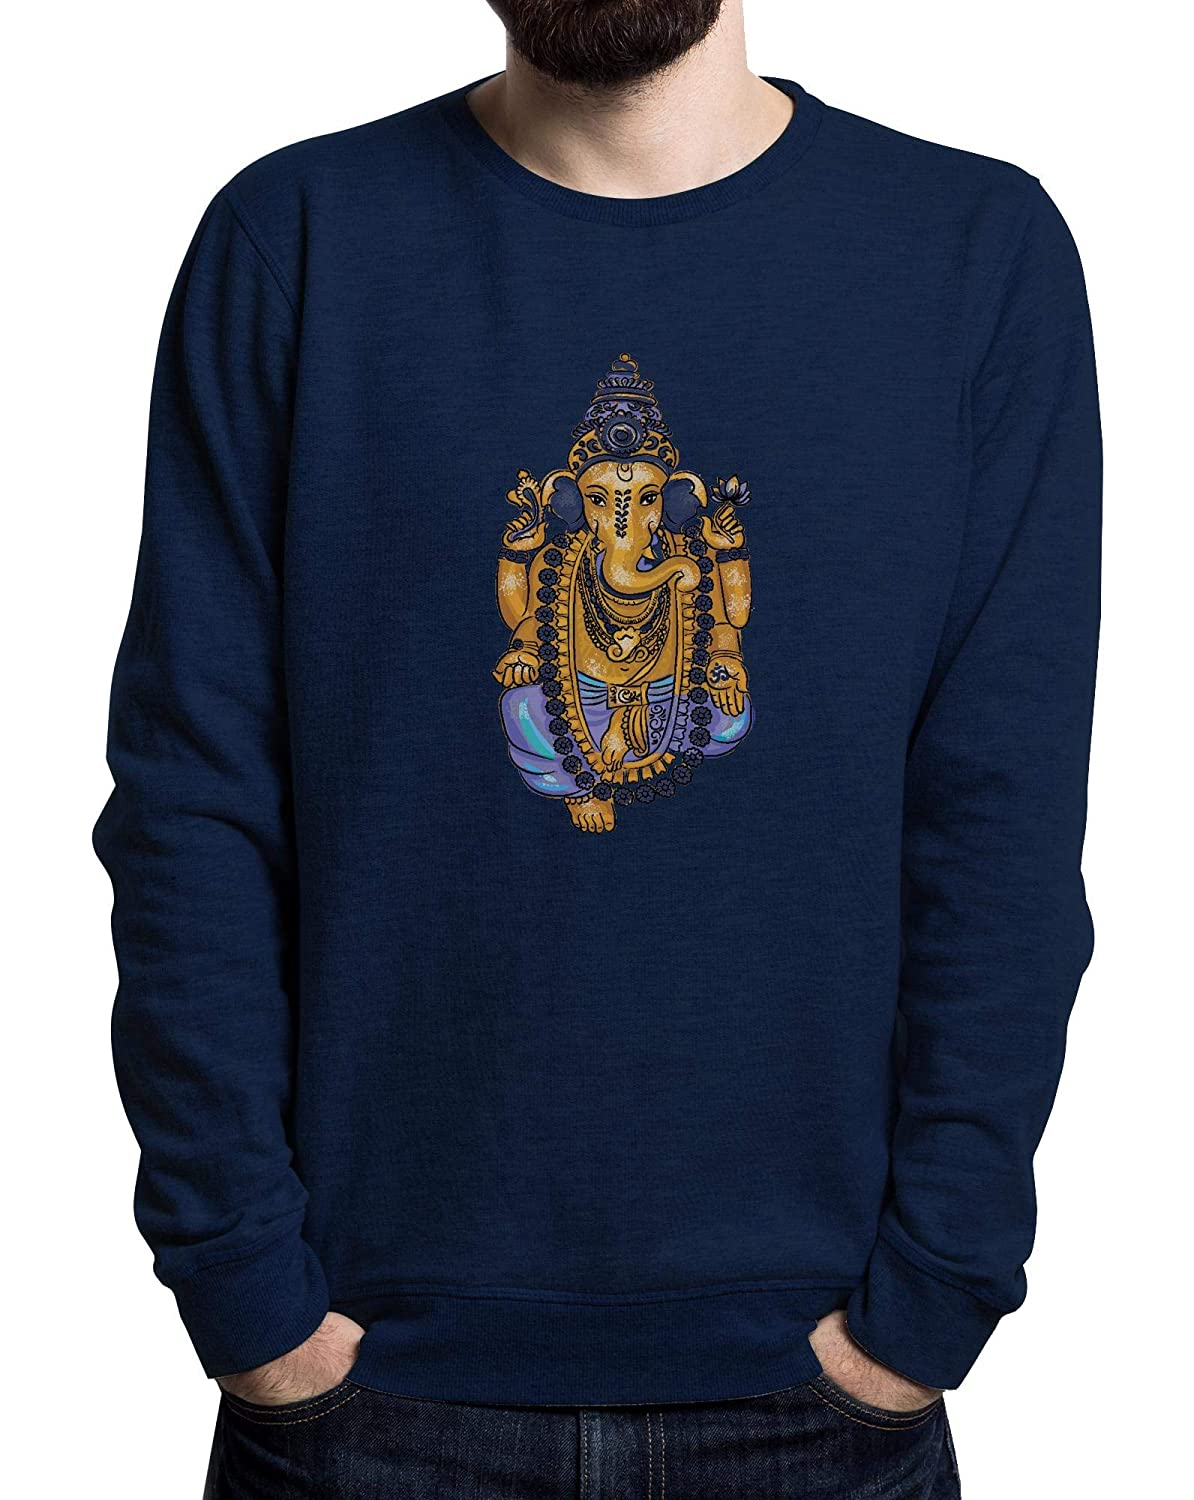 Ganesha, India Love, Ganapati, Cool Style, Yoga Style Men's Sweater Schwarz